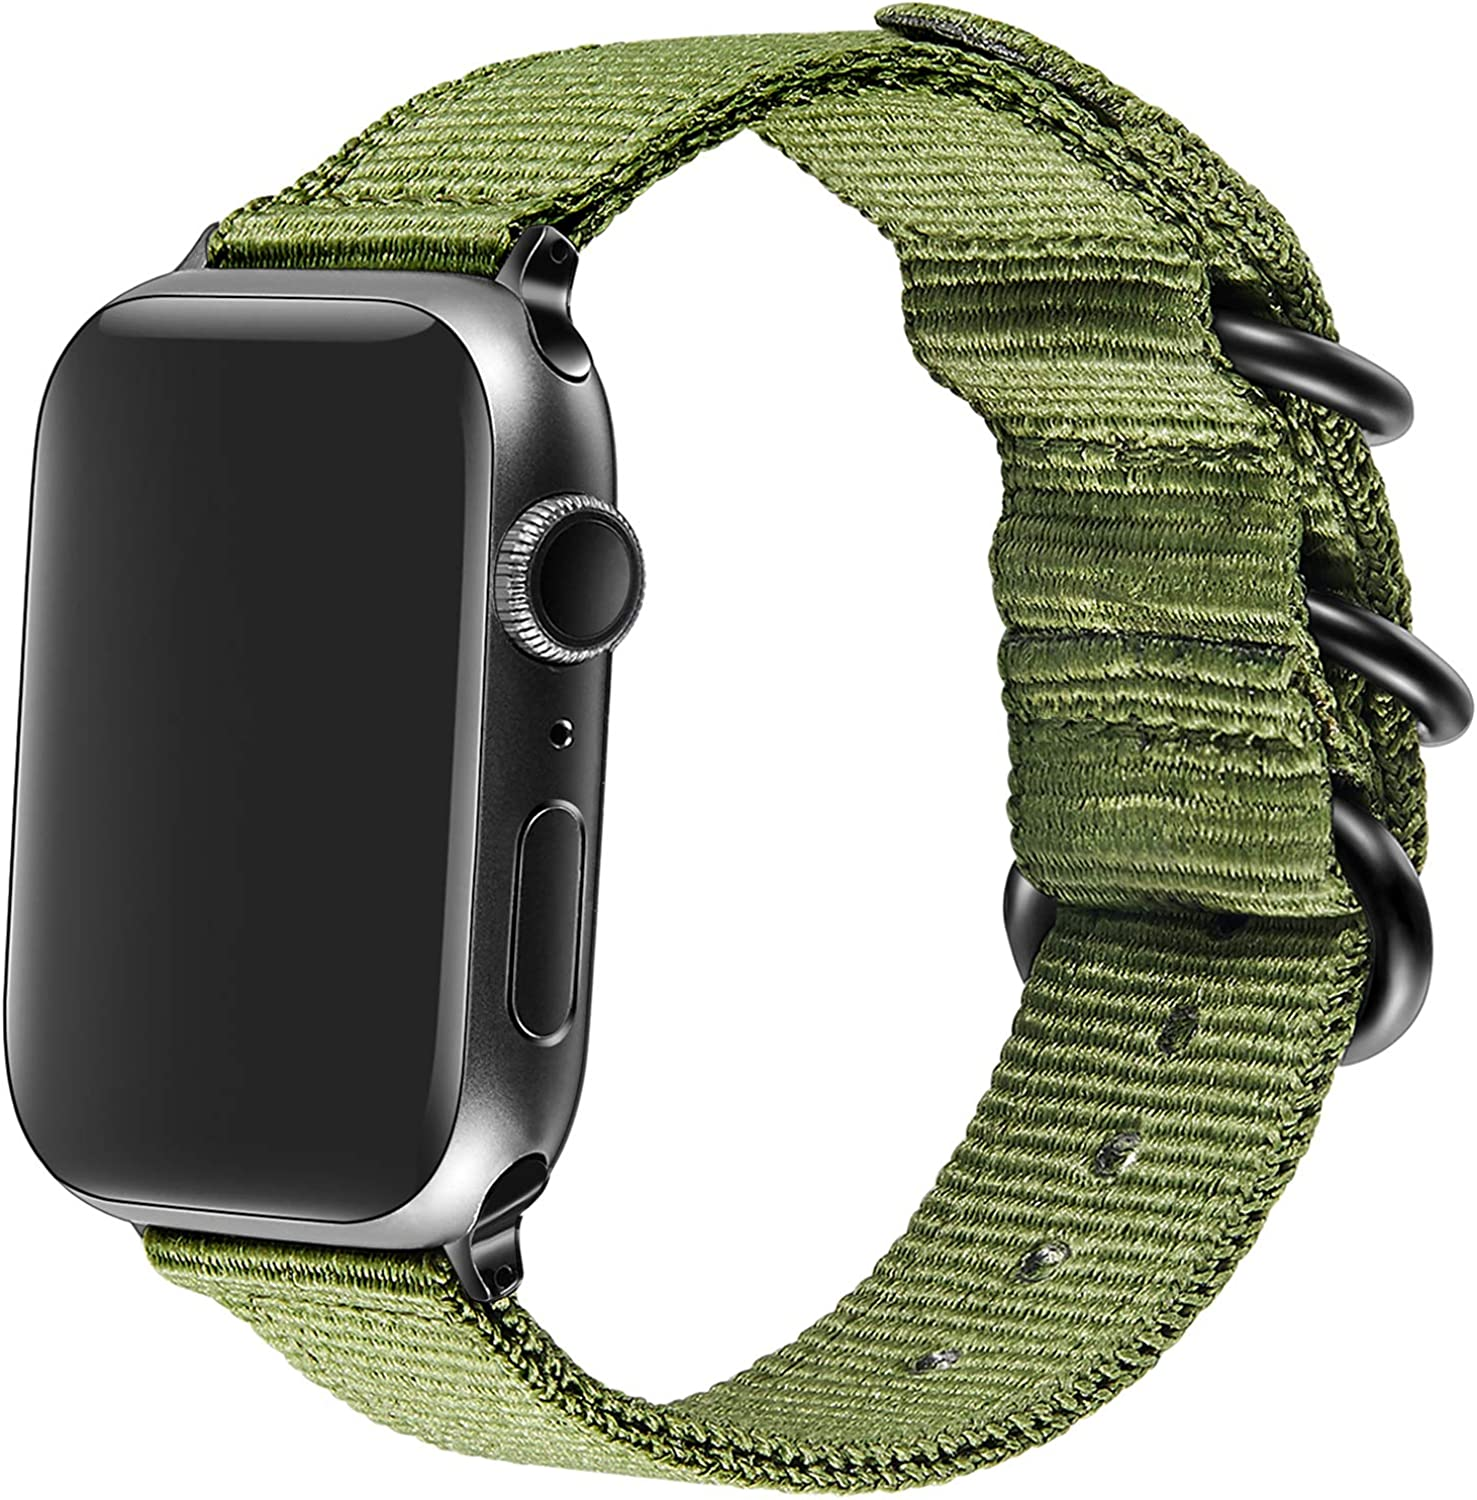 AGUPERFIT Nylon Bands Compatible with Apple Watch 42mm 44mm, Robust and Breathable Replacement Strap Works with iWatch Series 6/SE/5/4/3/2/1